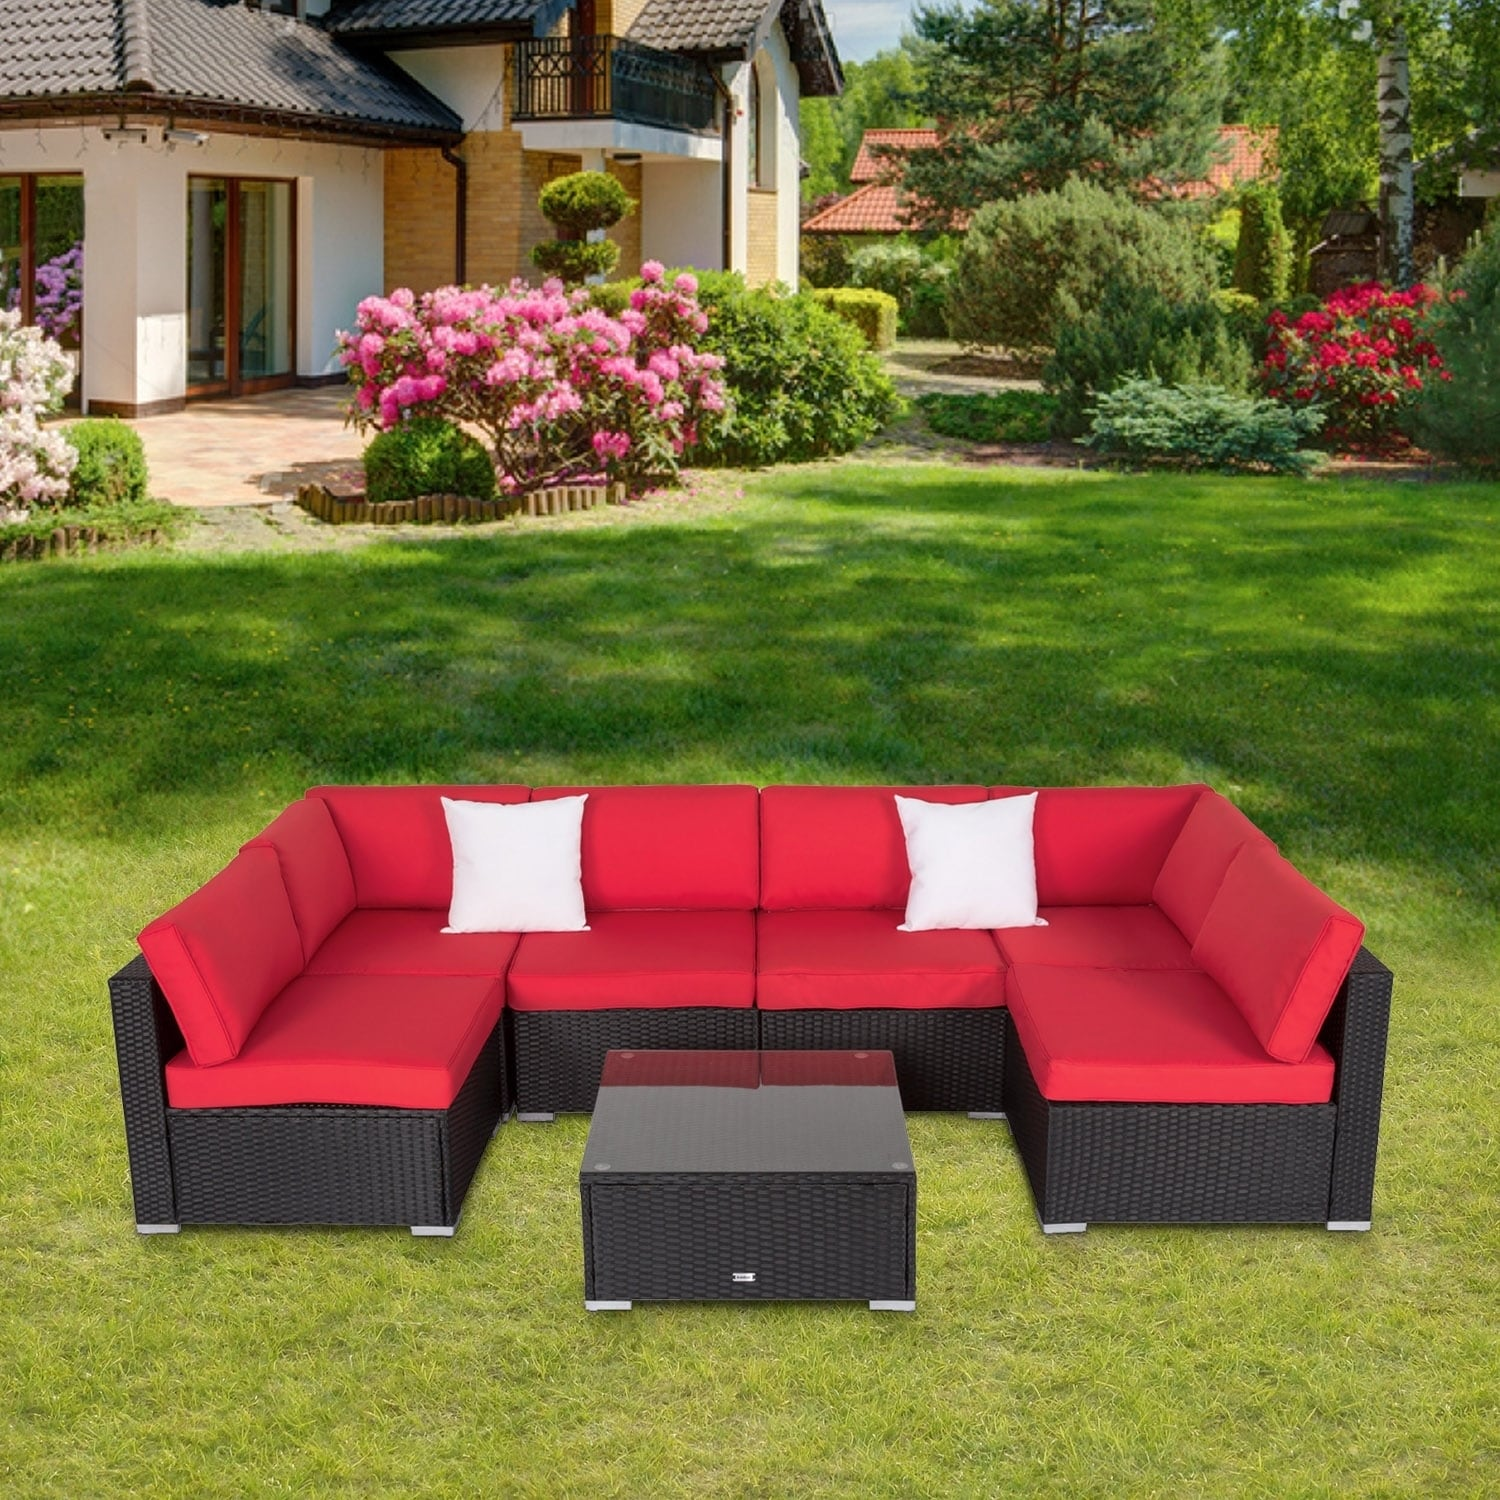 Kinbor Patio Sectional Sofa Outdoor Furniture Wicker Set Conversation With Cushions